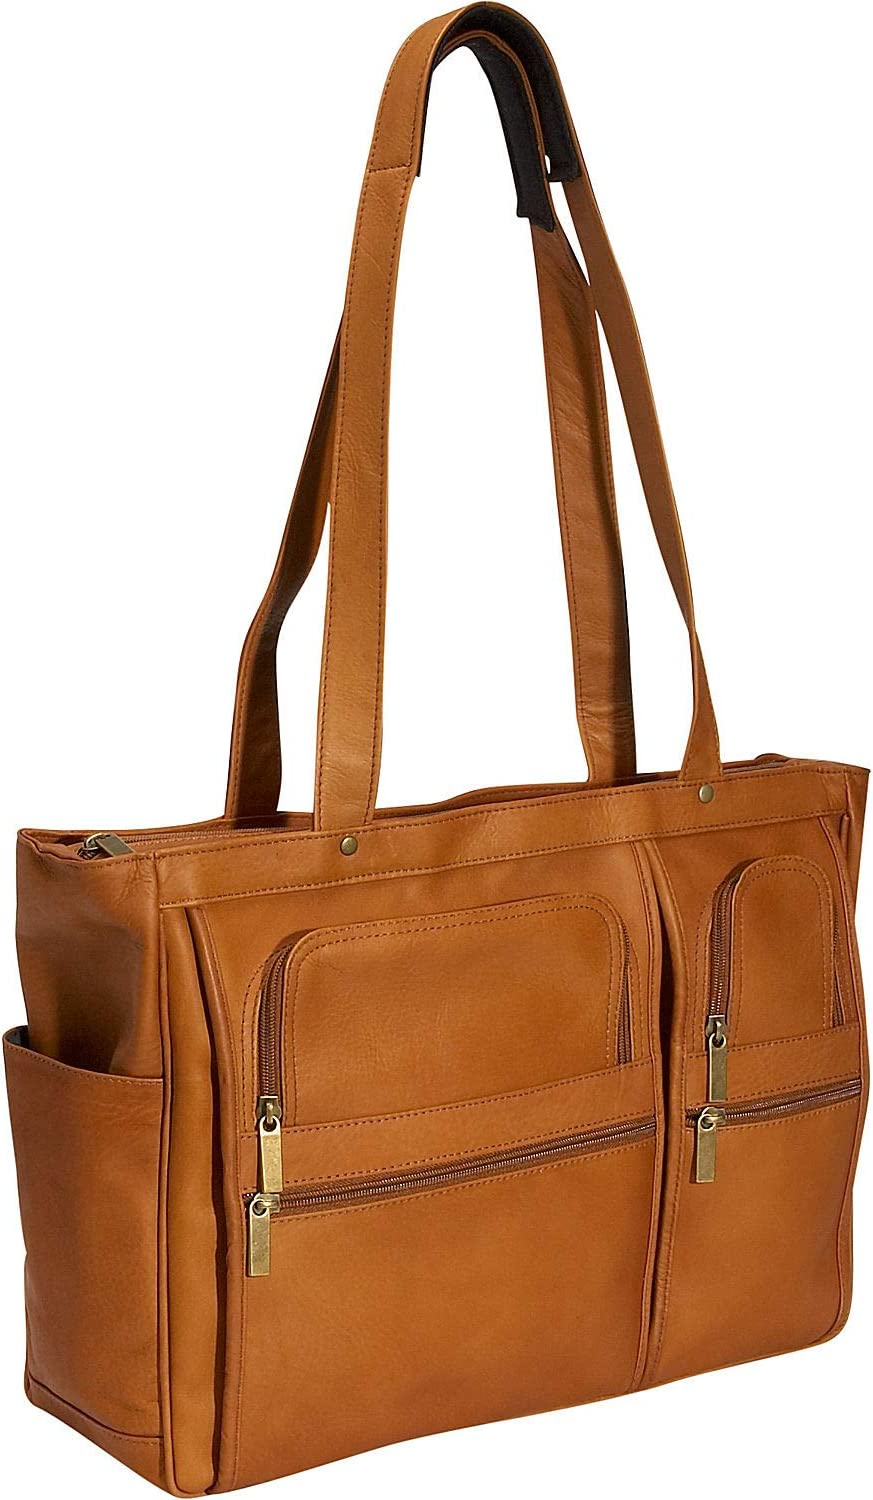 David King Leather Womens Multi Pocket Briefcase in Cafe